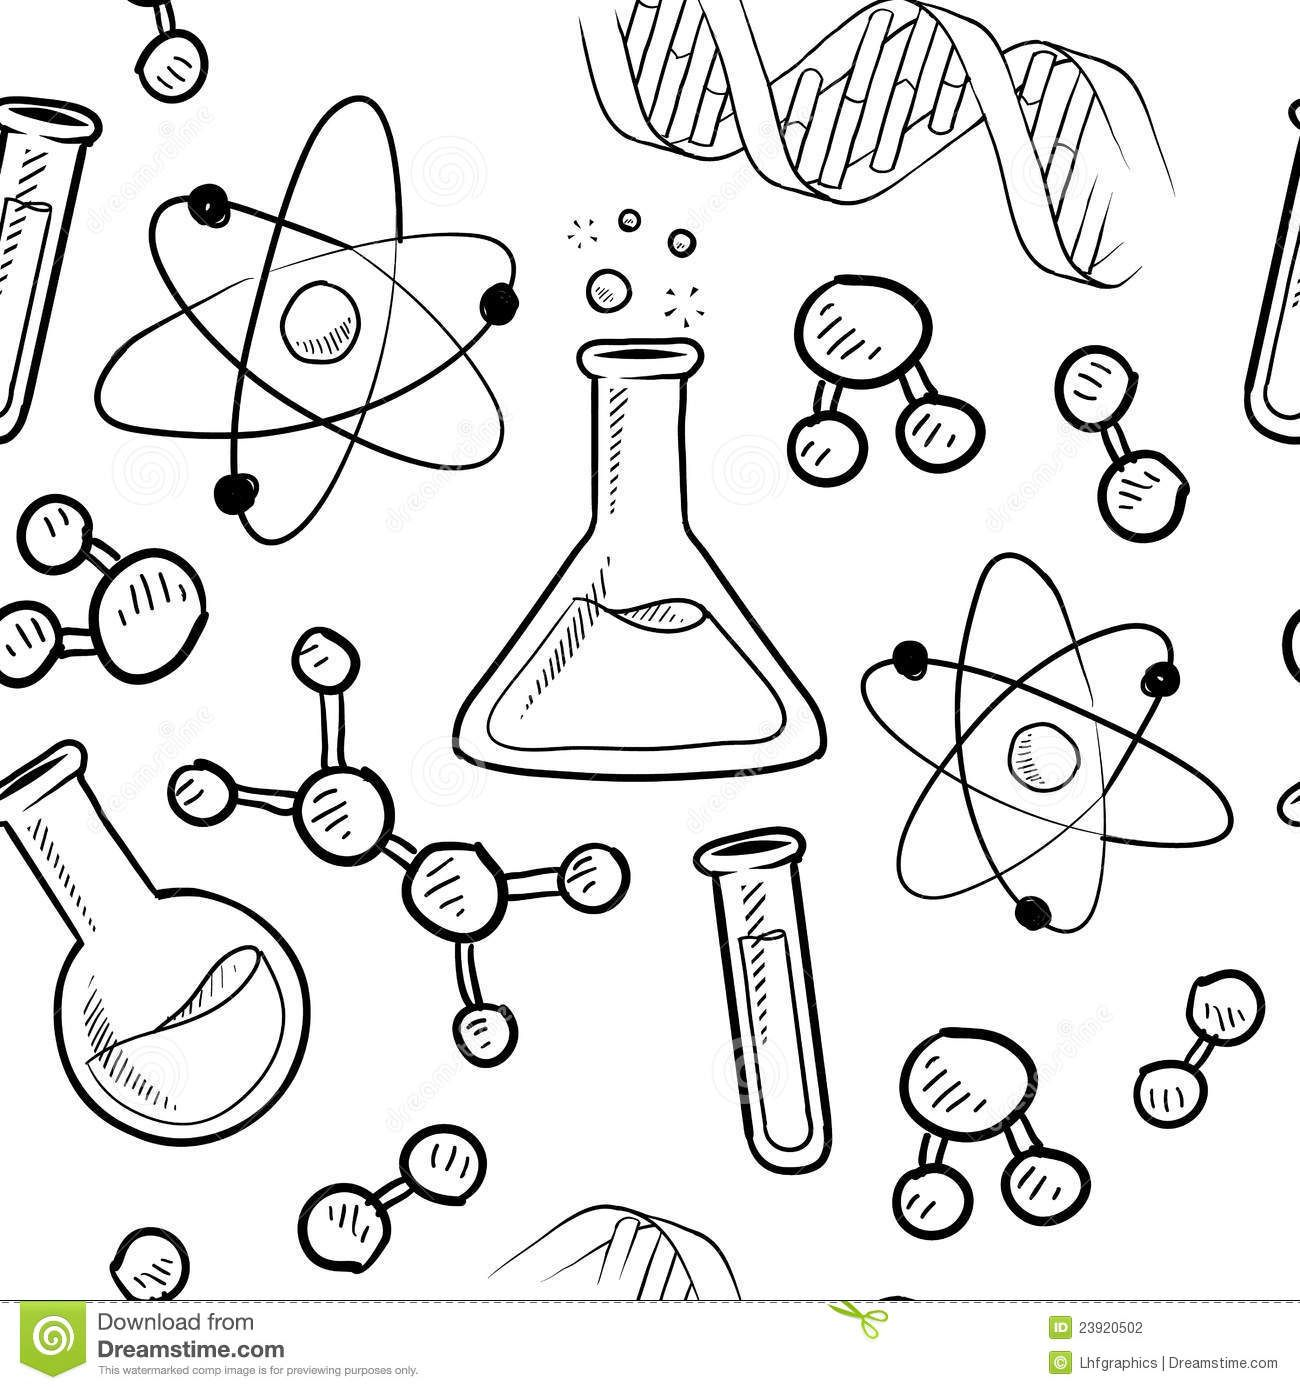 Science Coloring Pages Free Printable Colori On Page And Chemistry Science Drawing Science Doodles Coloring Pages